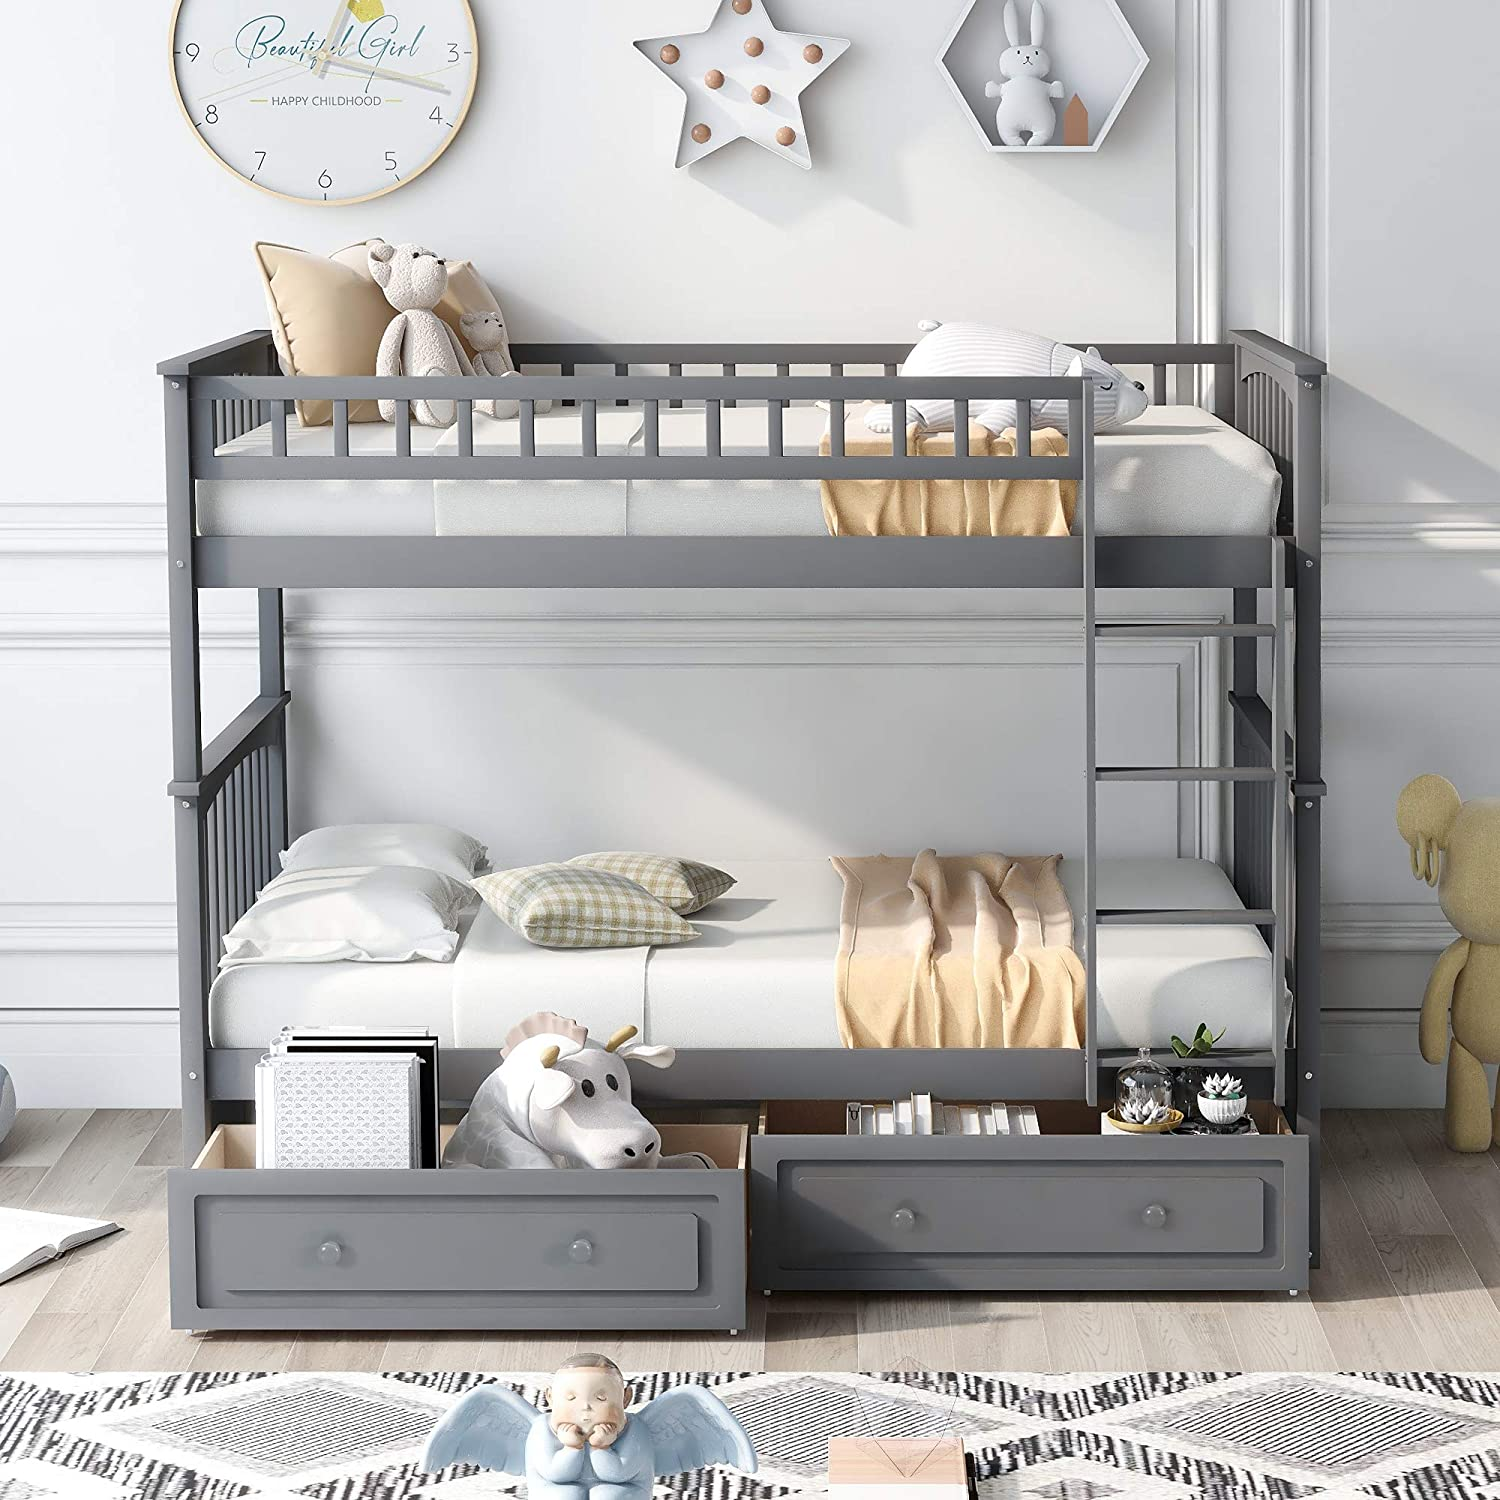 Memphis Mall Bunk Bed for Kids Twin 2 Over Woode with Drawers El Paso Mall